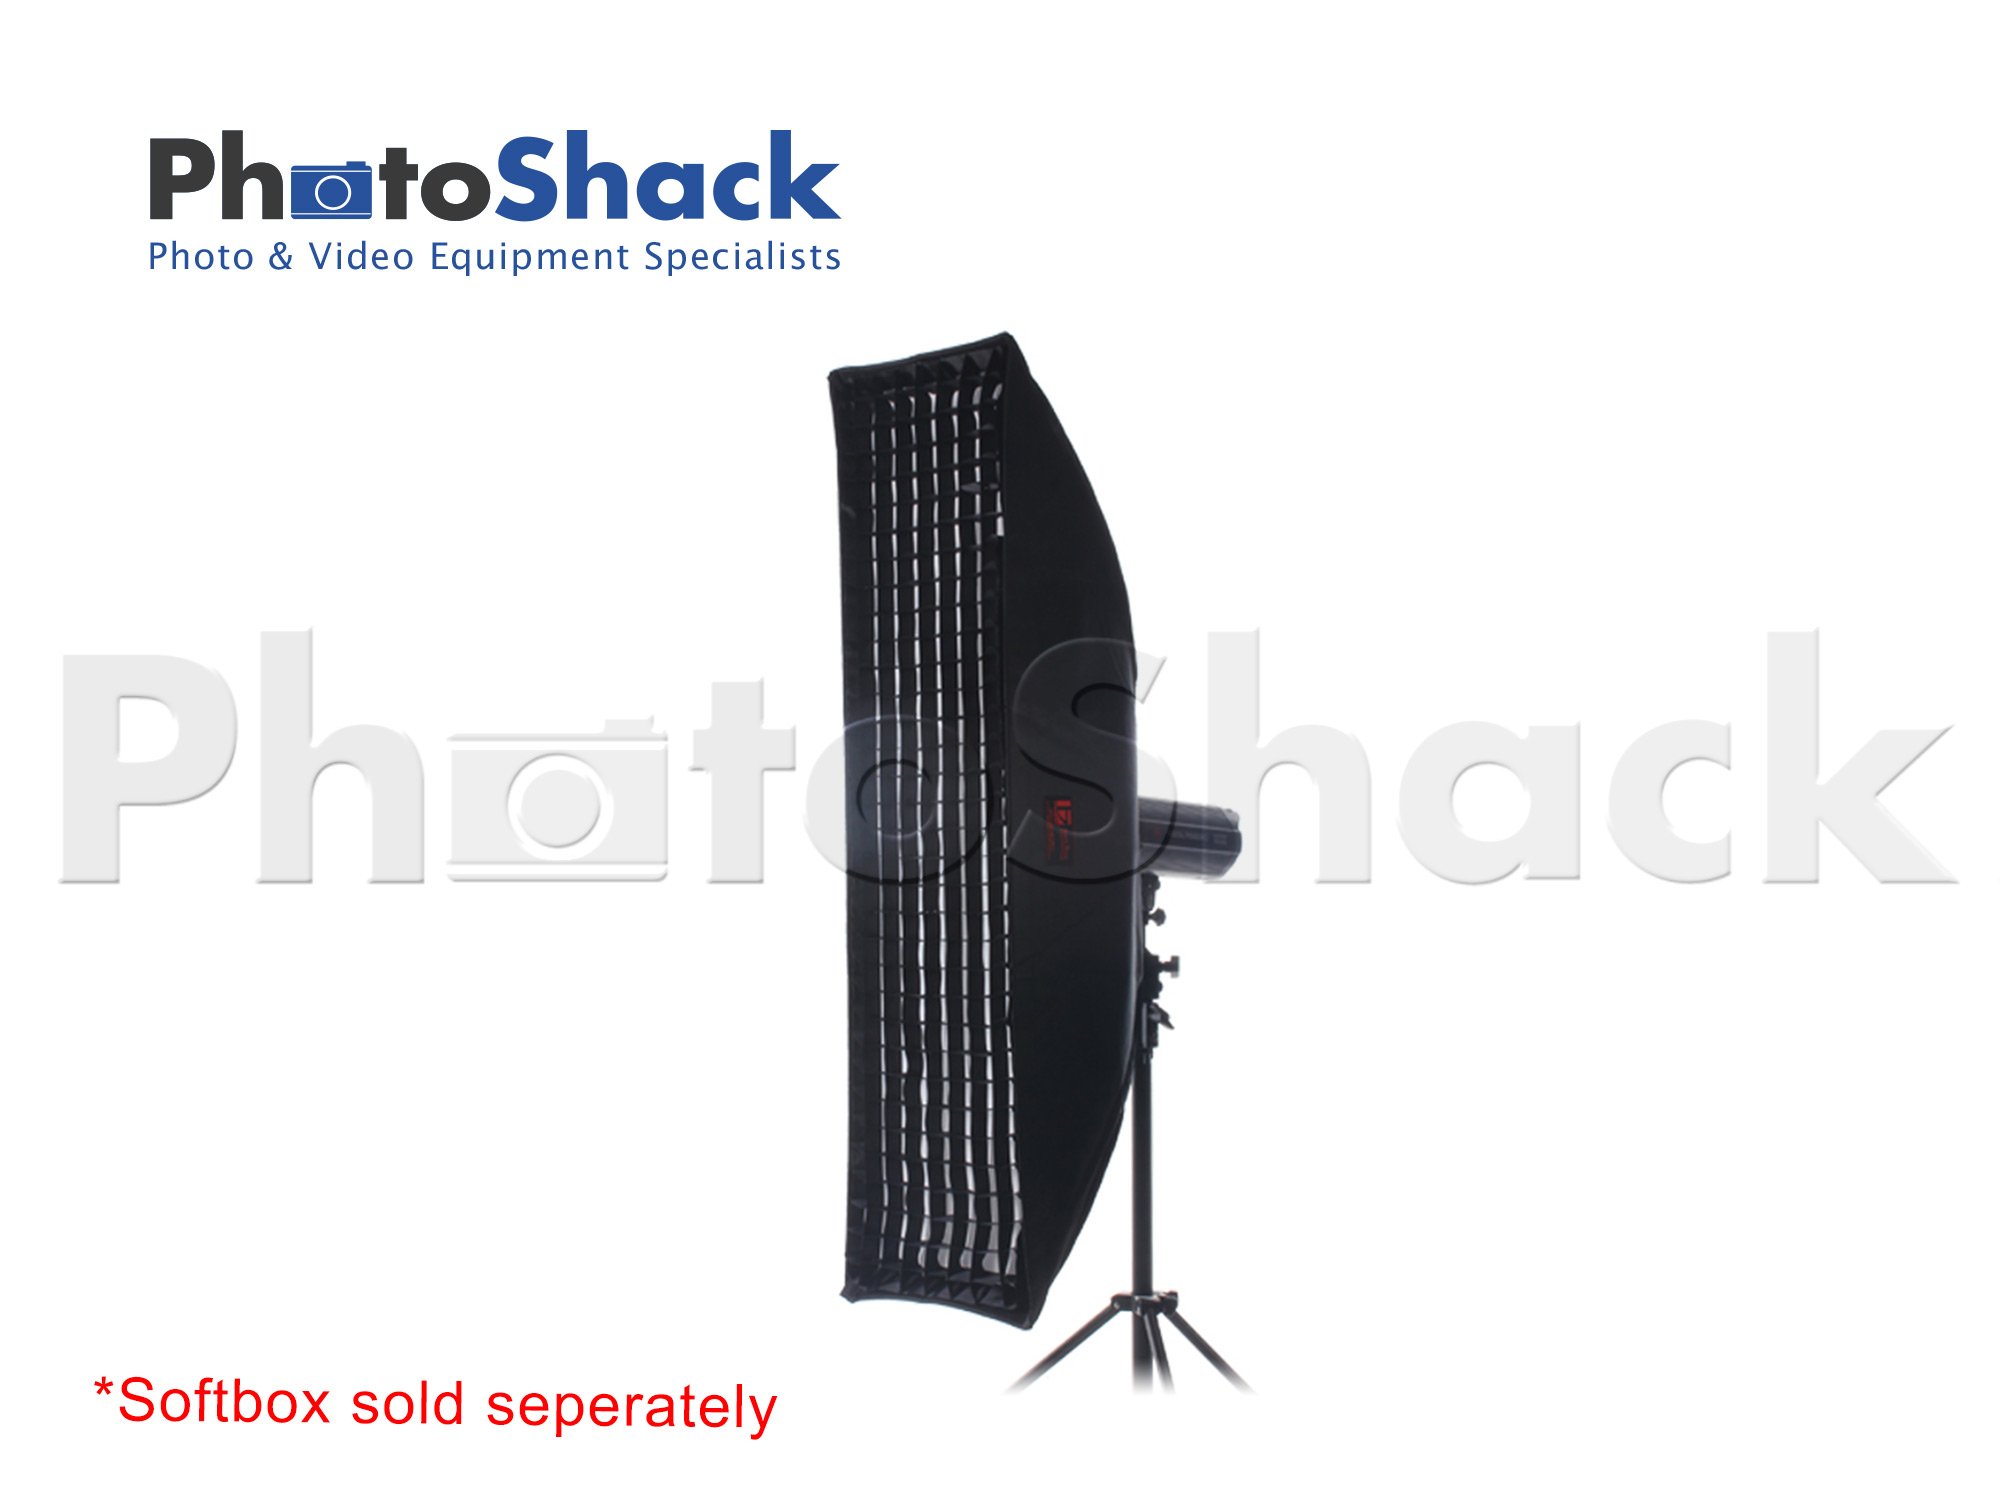 Grid for Portable Folding Softbox - Strip light 30x140mm